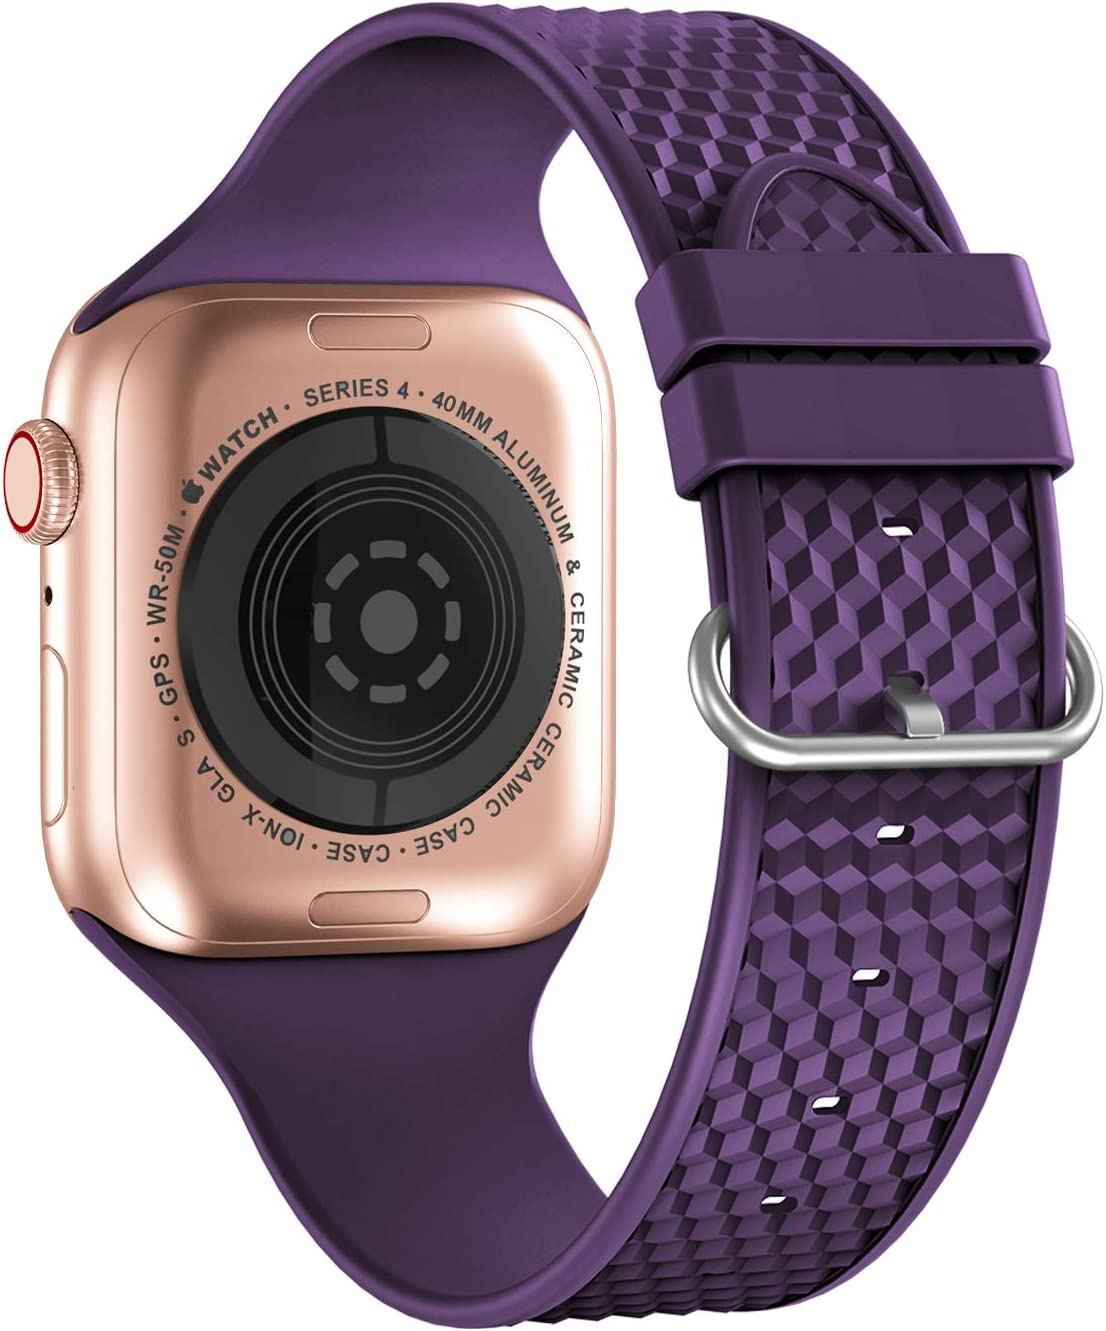 iWabcertoo Compatible with Apple Watch Bands 38mm 40mm, Soft Silicone Sport Watch Bands Wristband Replacement Strap for iWatch Series 6 5 4 3 2 1, SE, Sport Edition, Women Men (Dark Purple)